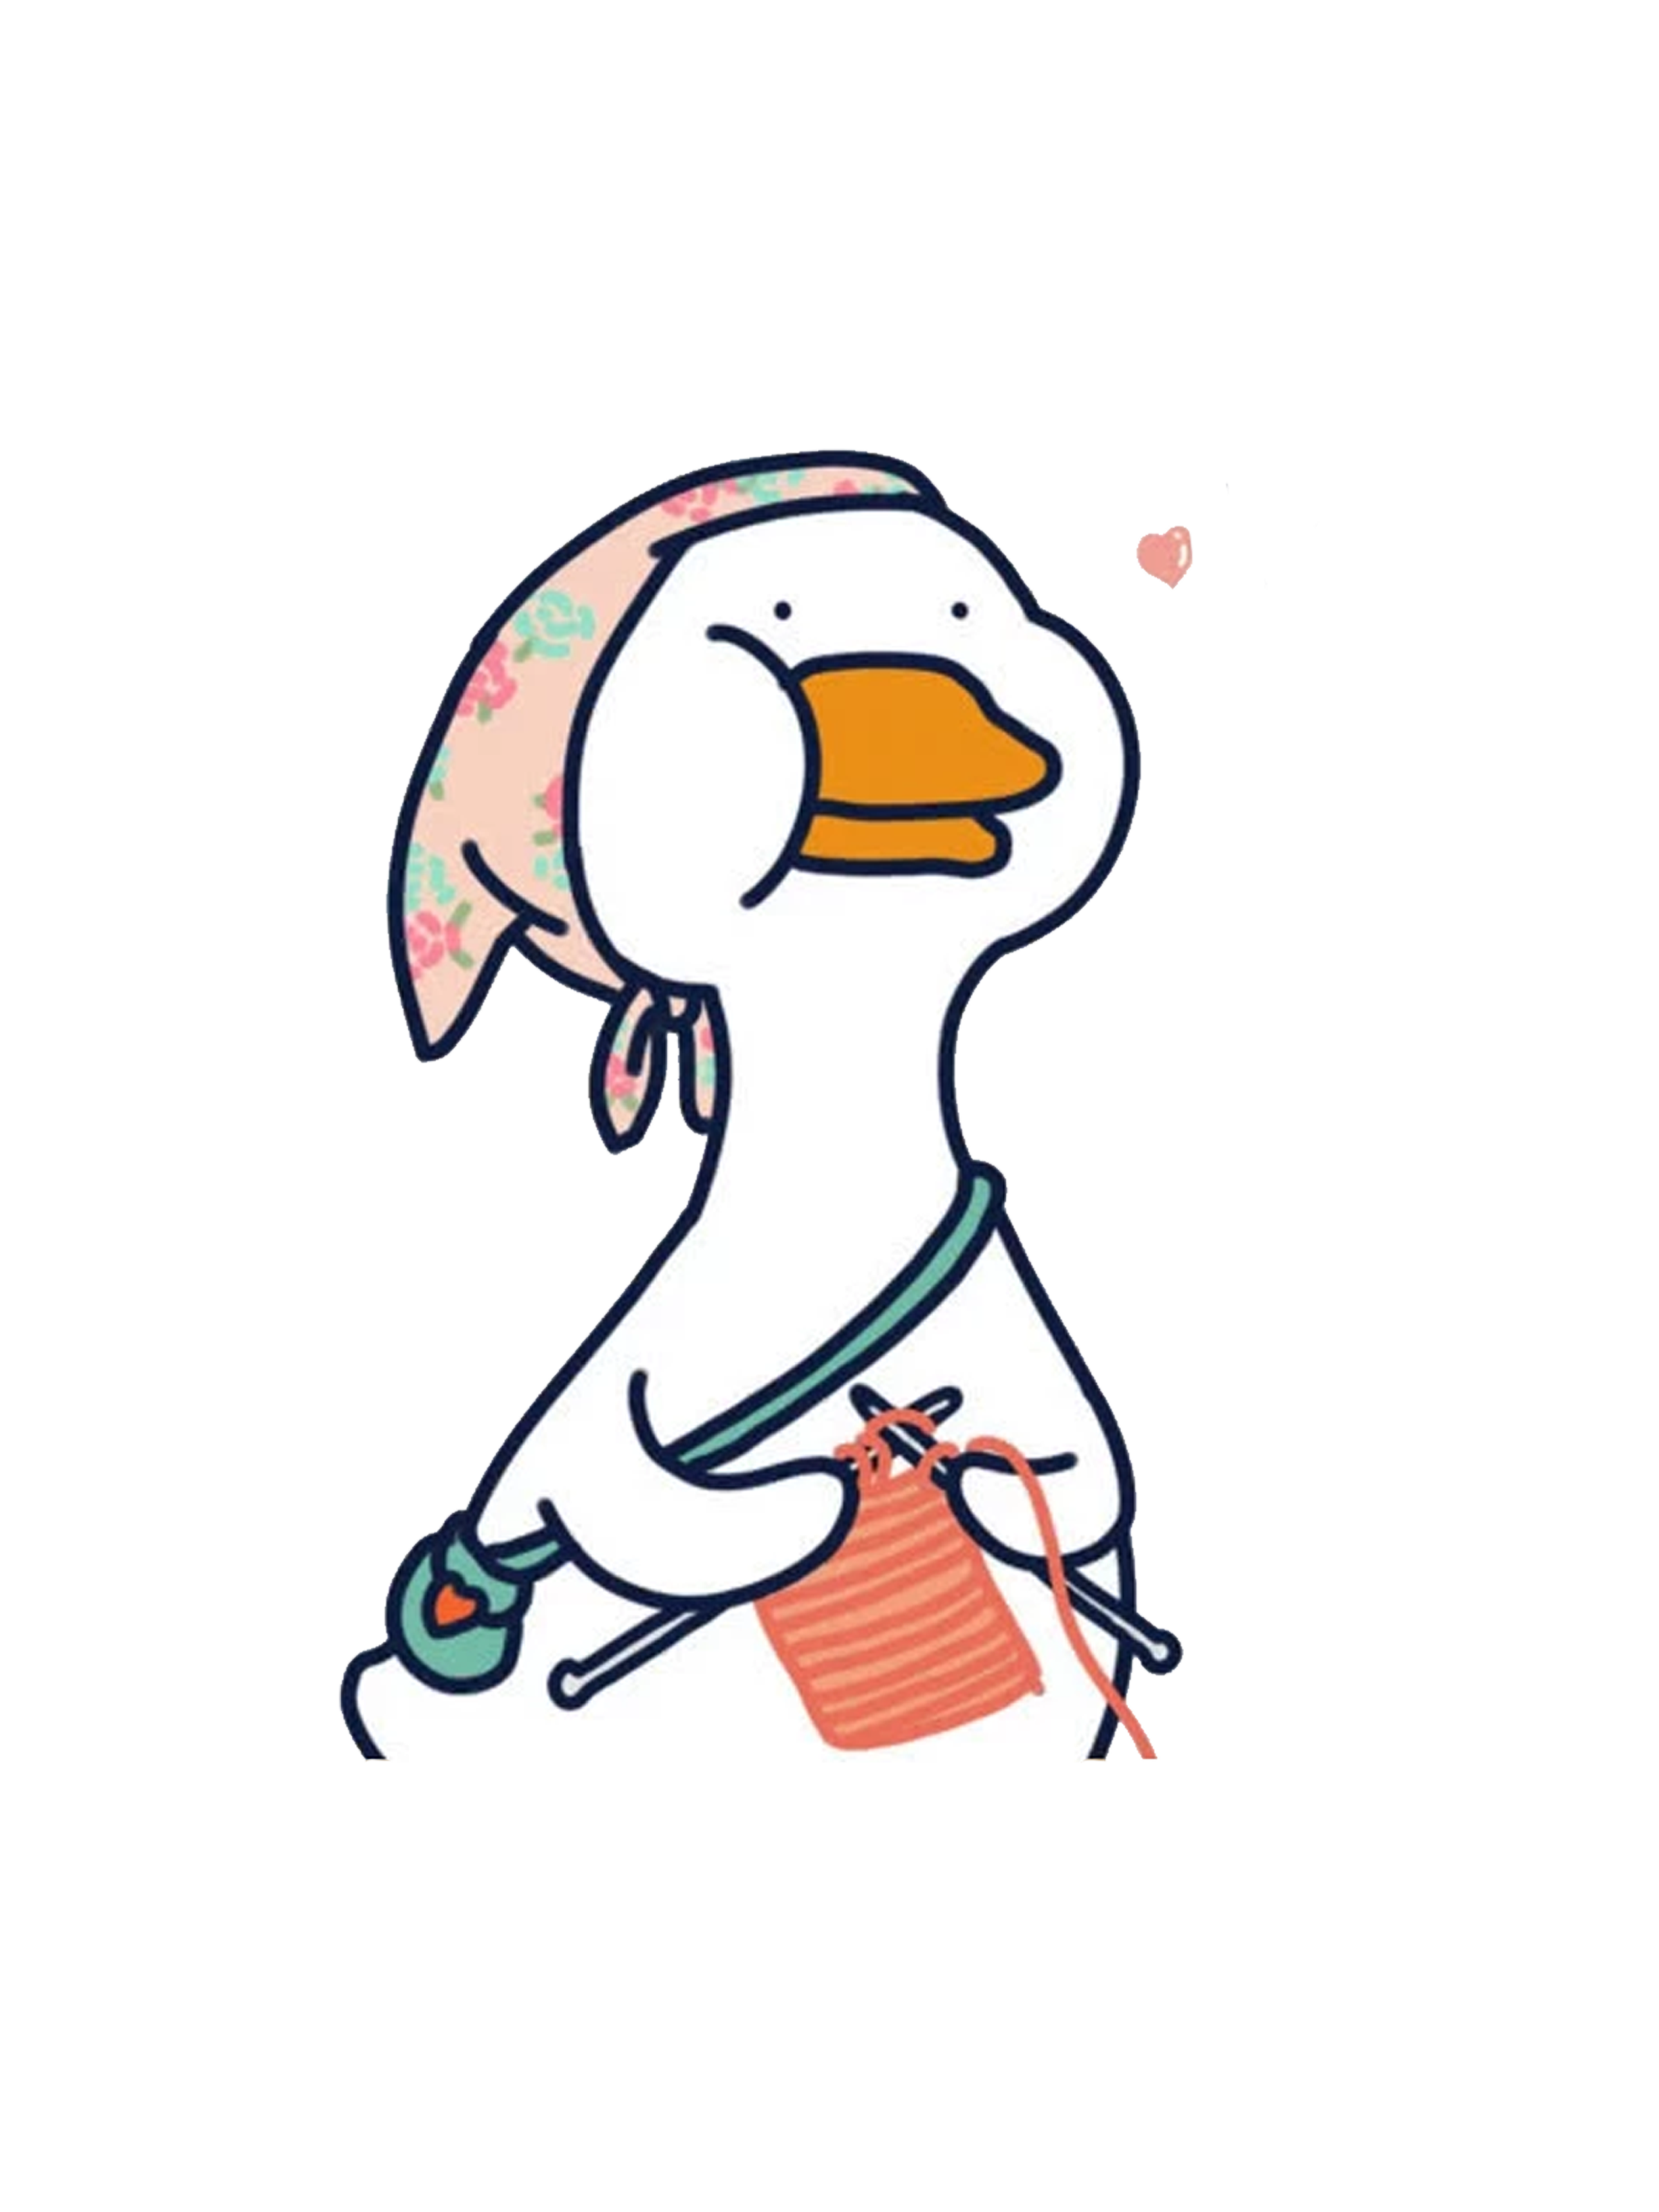 Untitled Goose Grandma Edition Sticker By Xiaokoong In